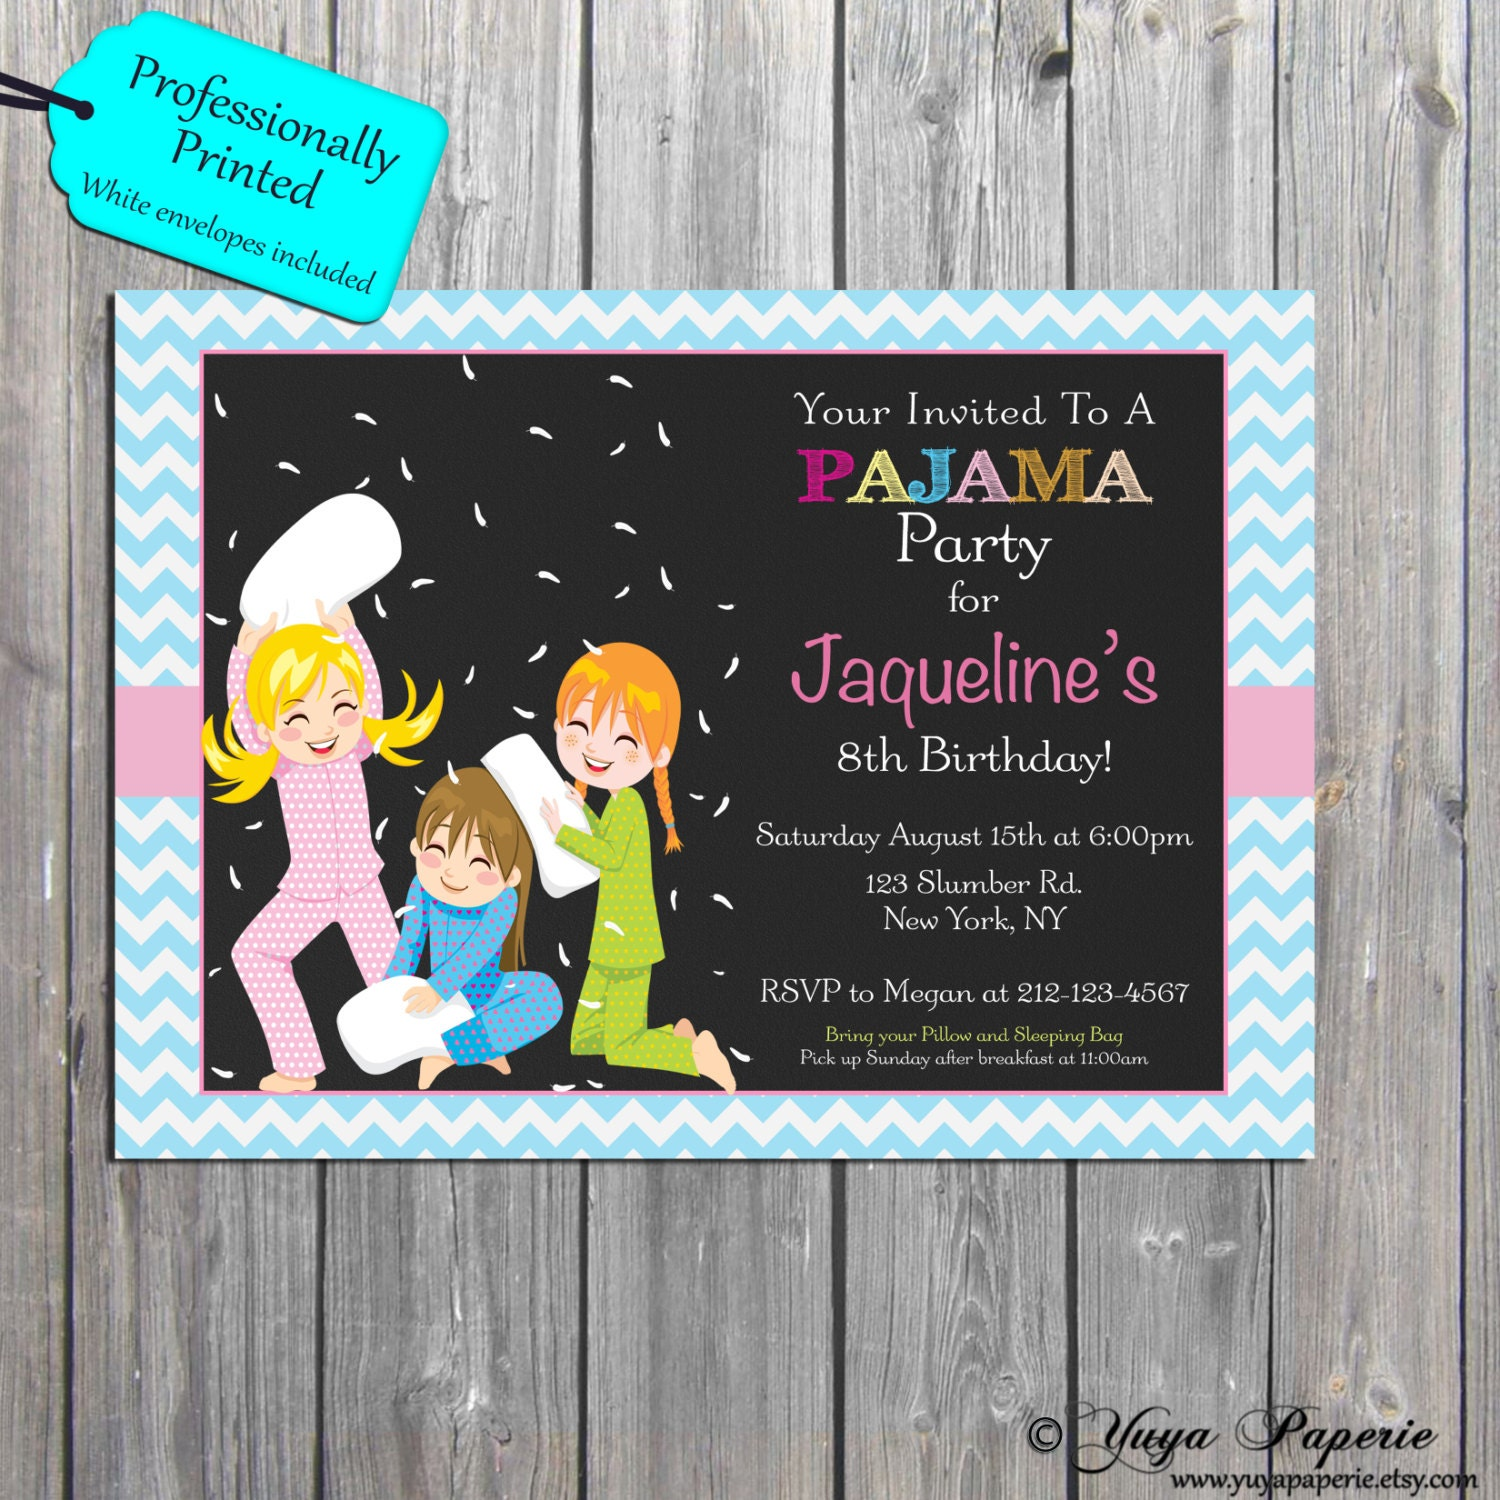 Pajama Party Invitation Slumber birthday party Invitations ...